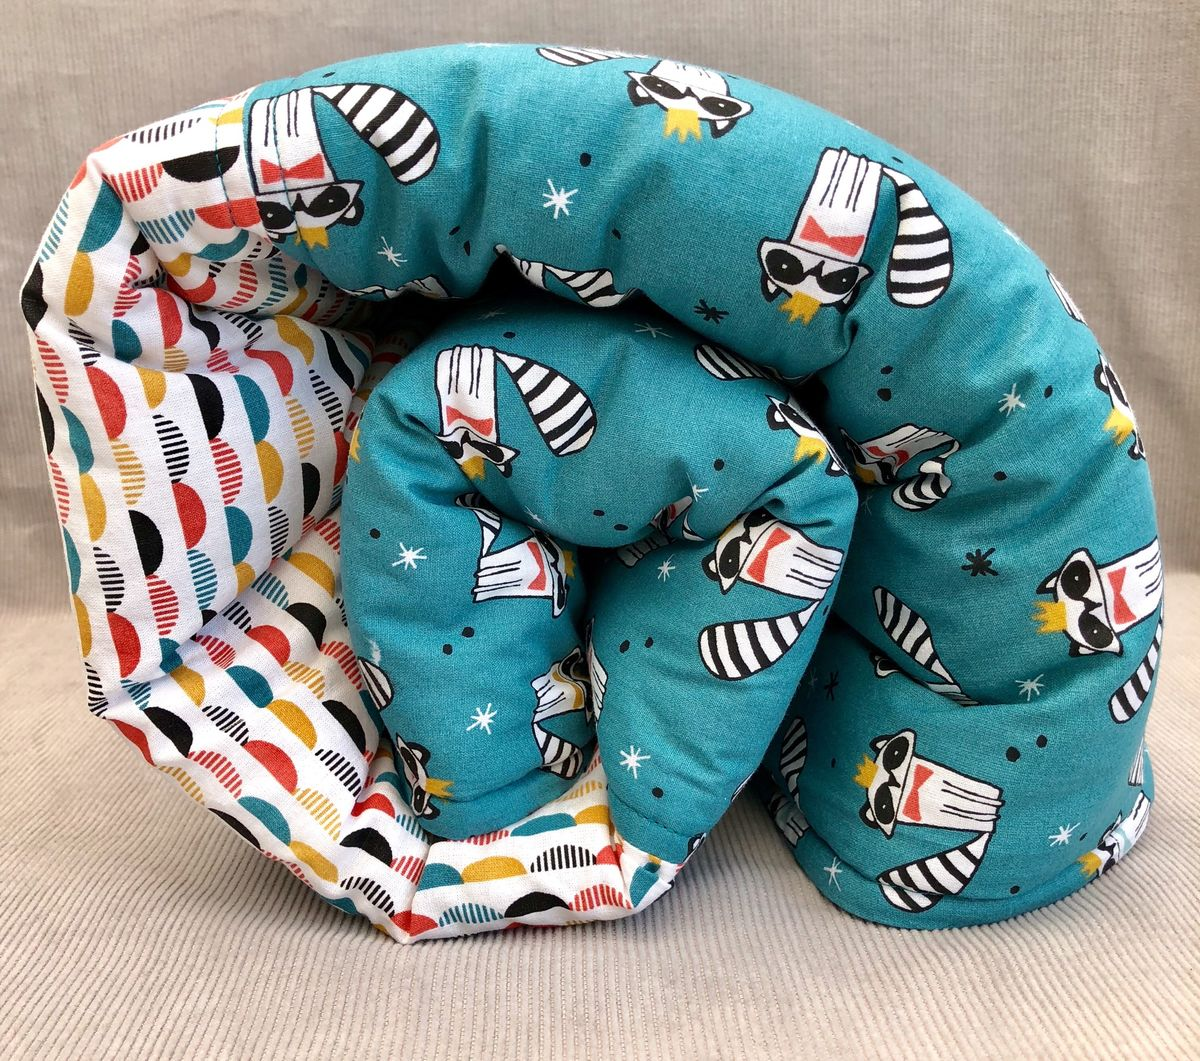 Contemporary baby, toddler play mat, turquoise, racoon print - product images  of